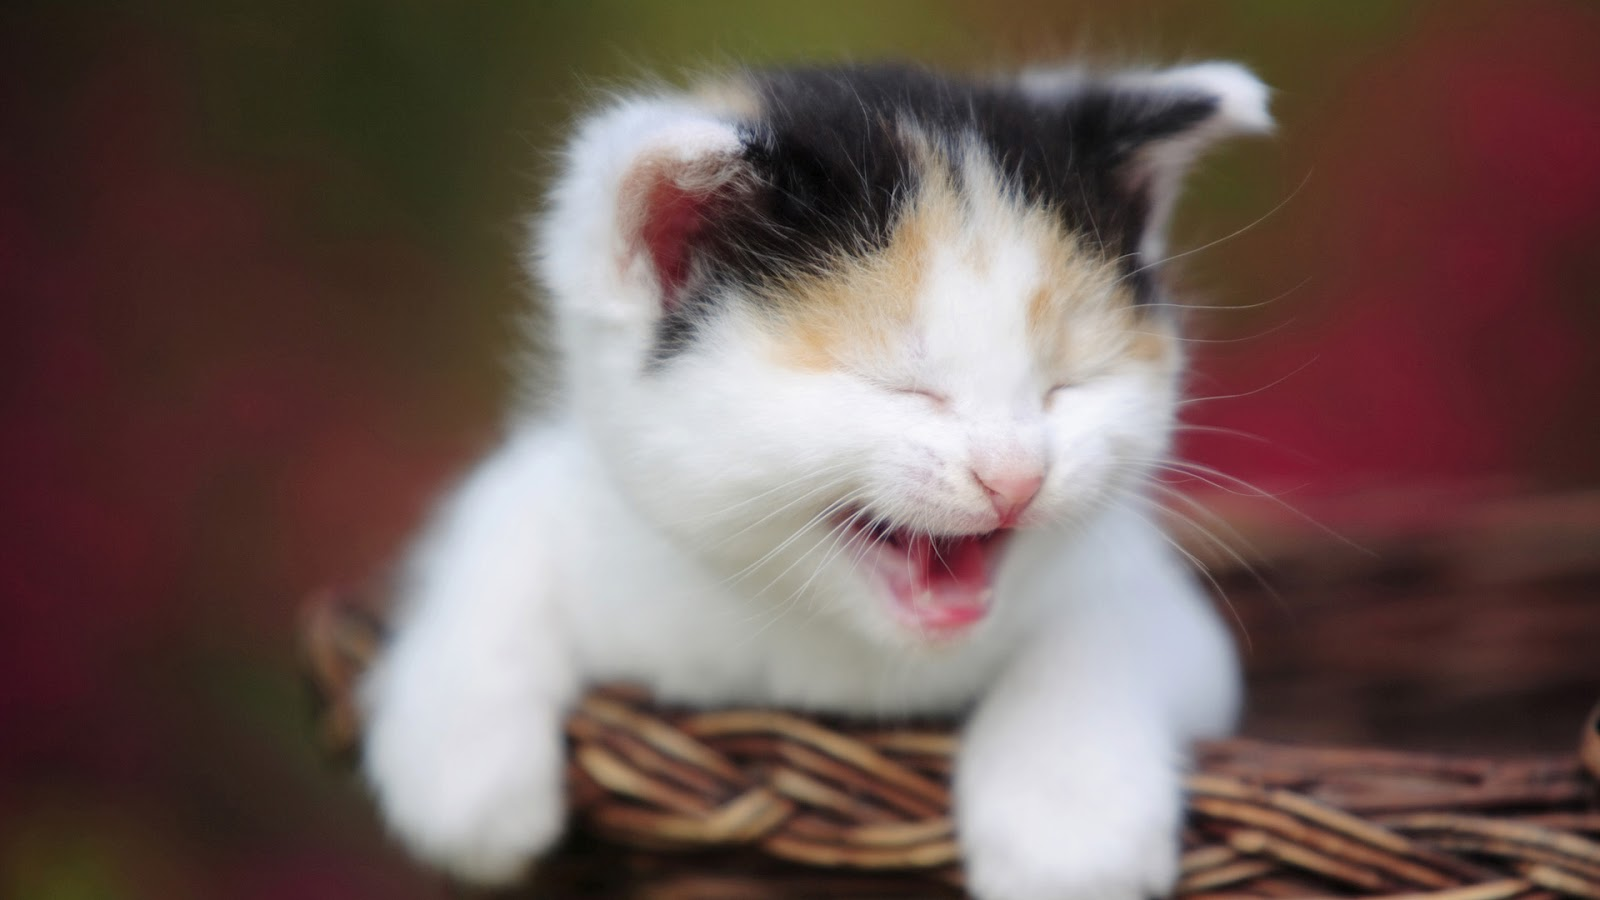 Baby cat crying image